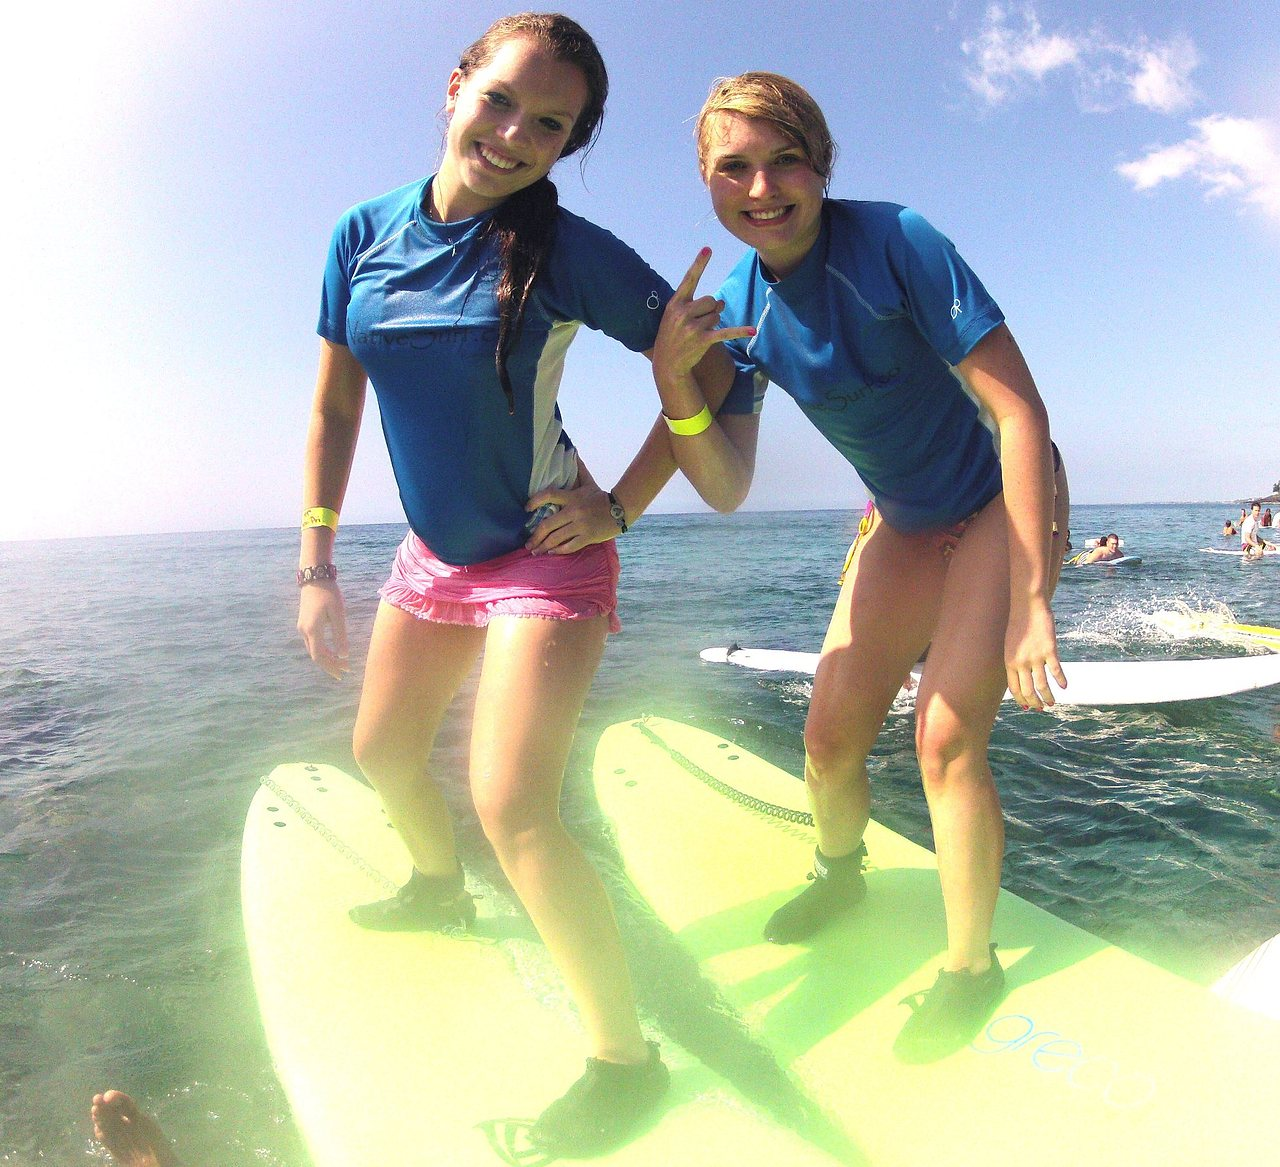 Hawaii Lifegaurd Surf Instructors